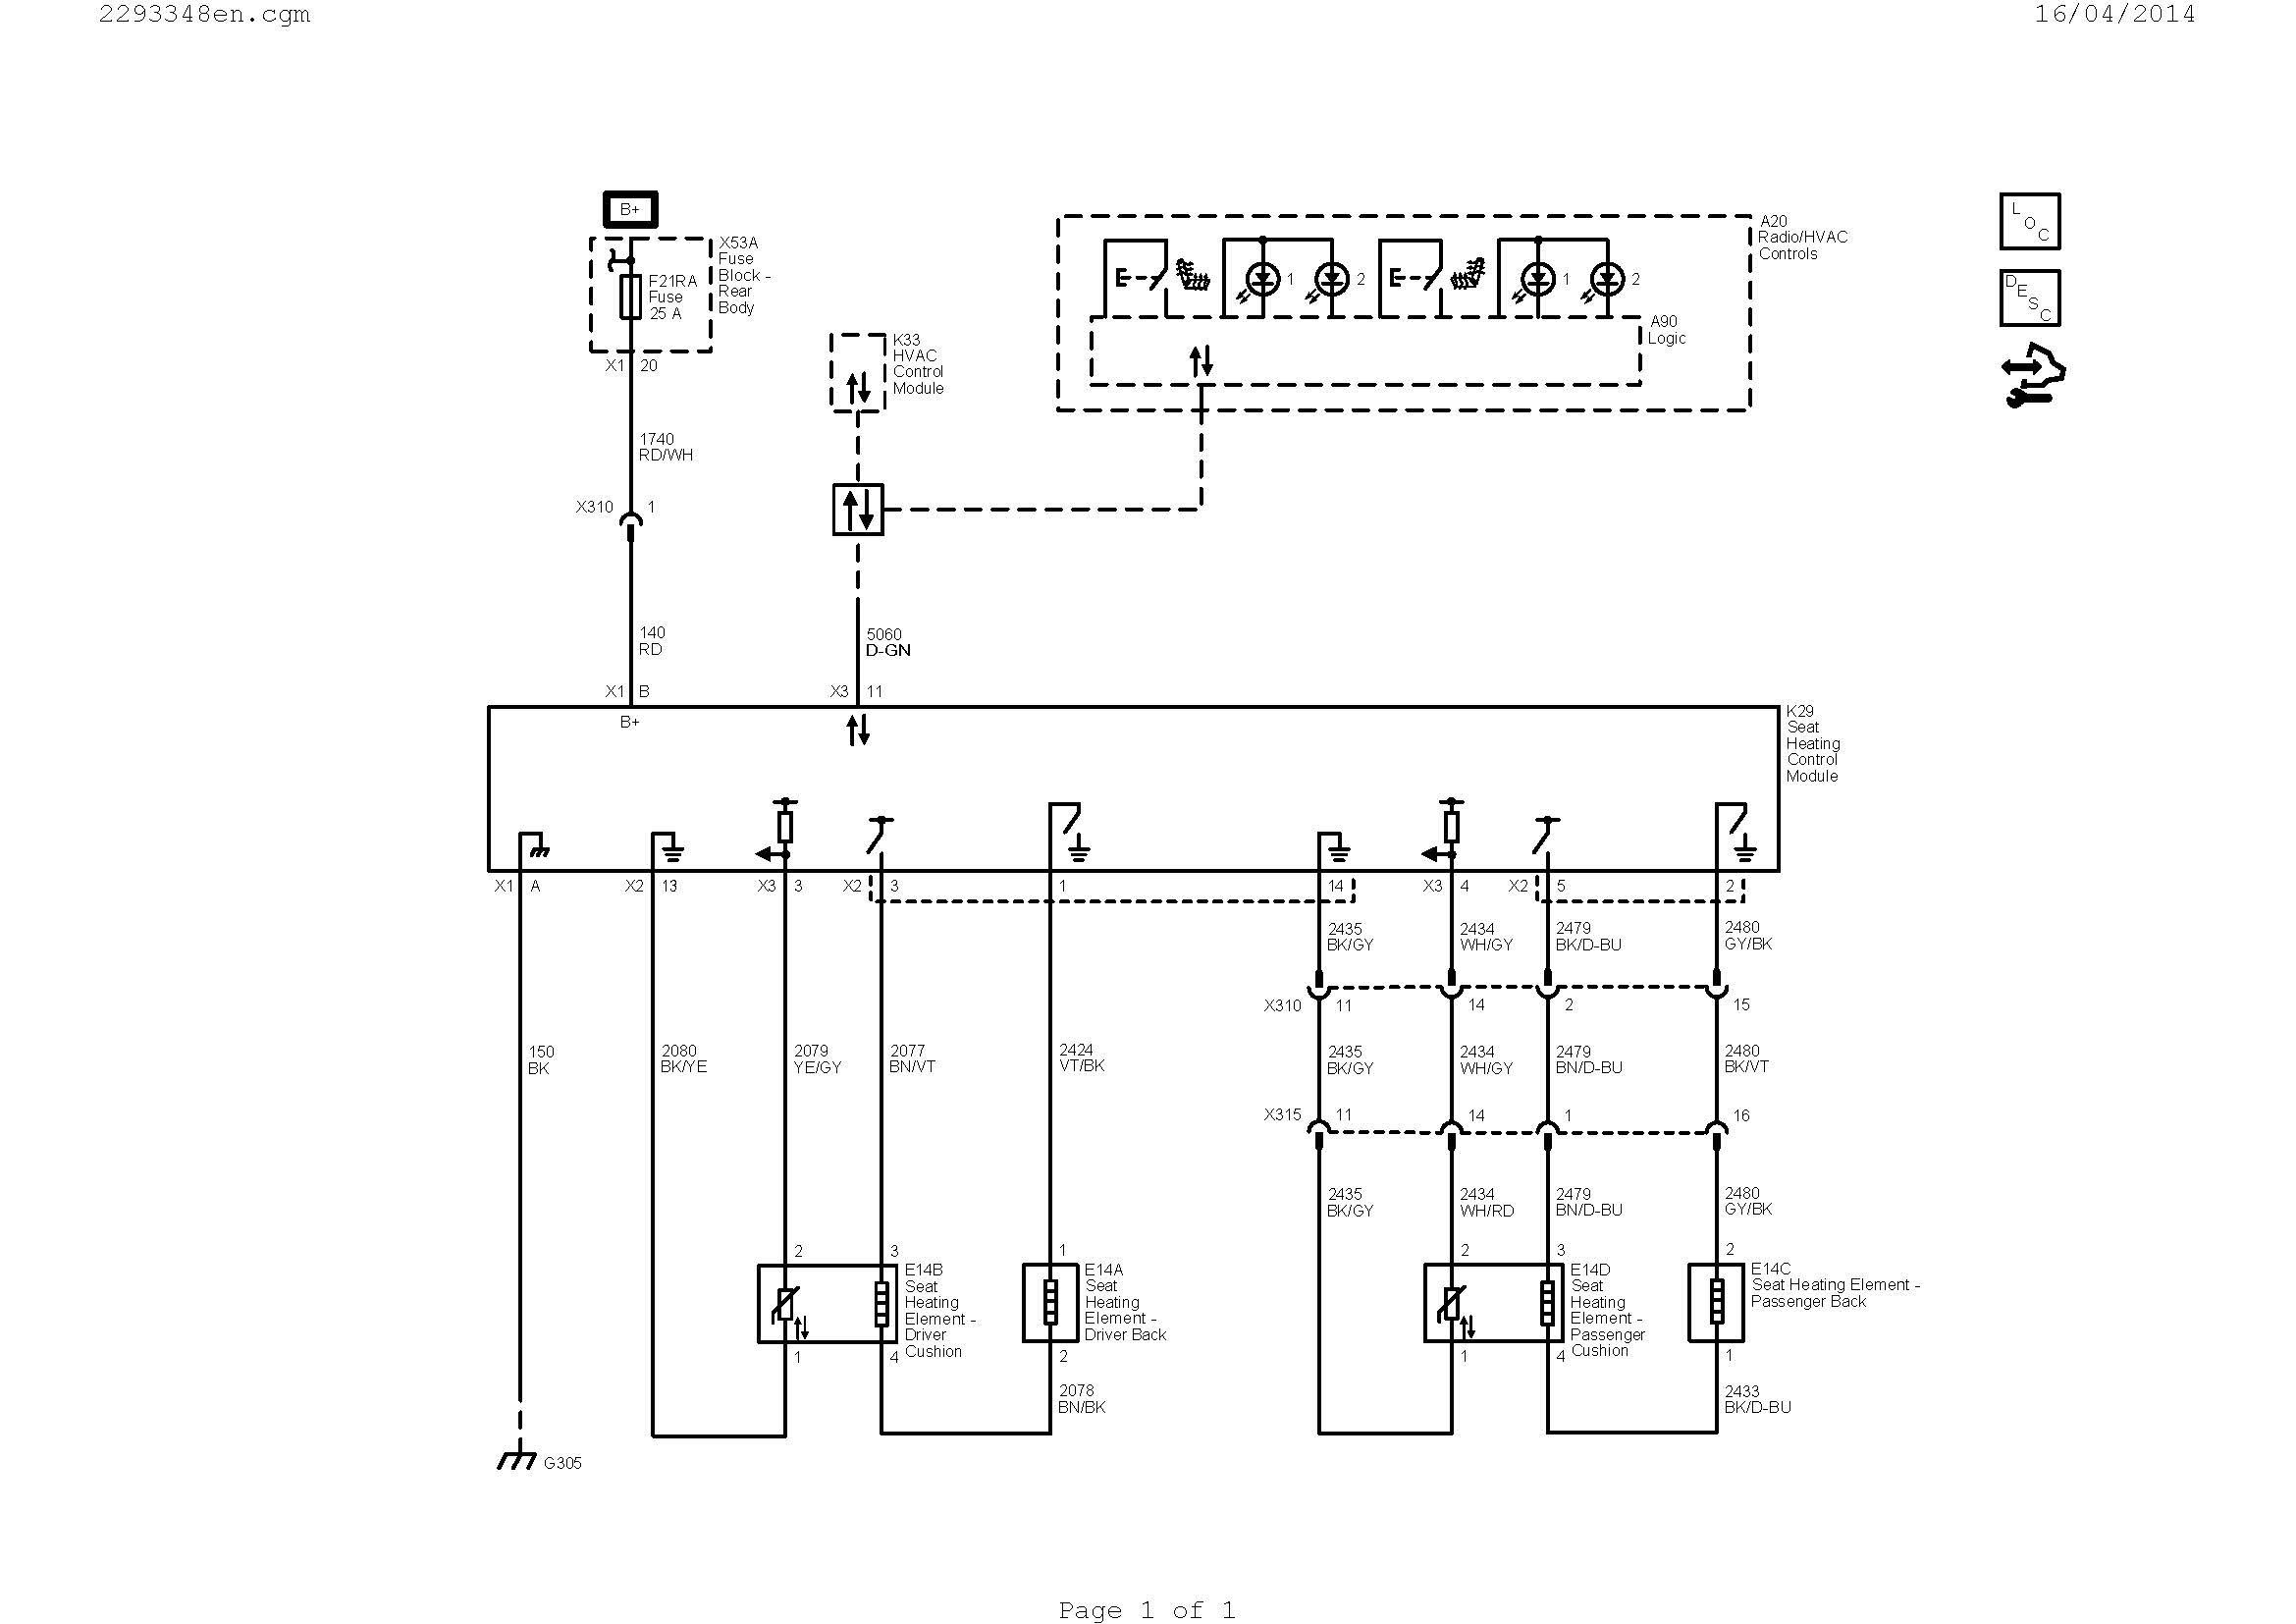 fan control center wiring diagram Collection-air conditioner thermostat wiring diagram Download Wiring A Ac Thermostat Diagram New Wiring Diagram Ac 5-h